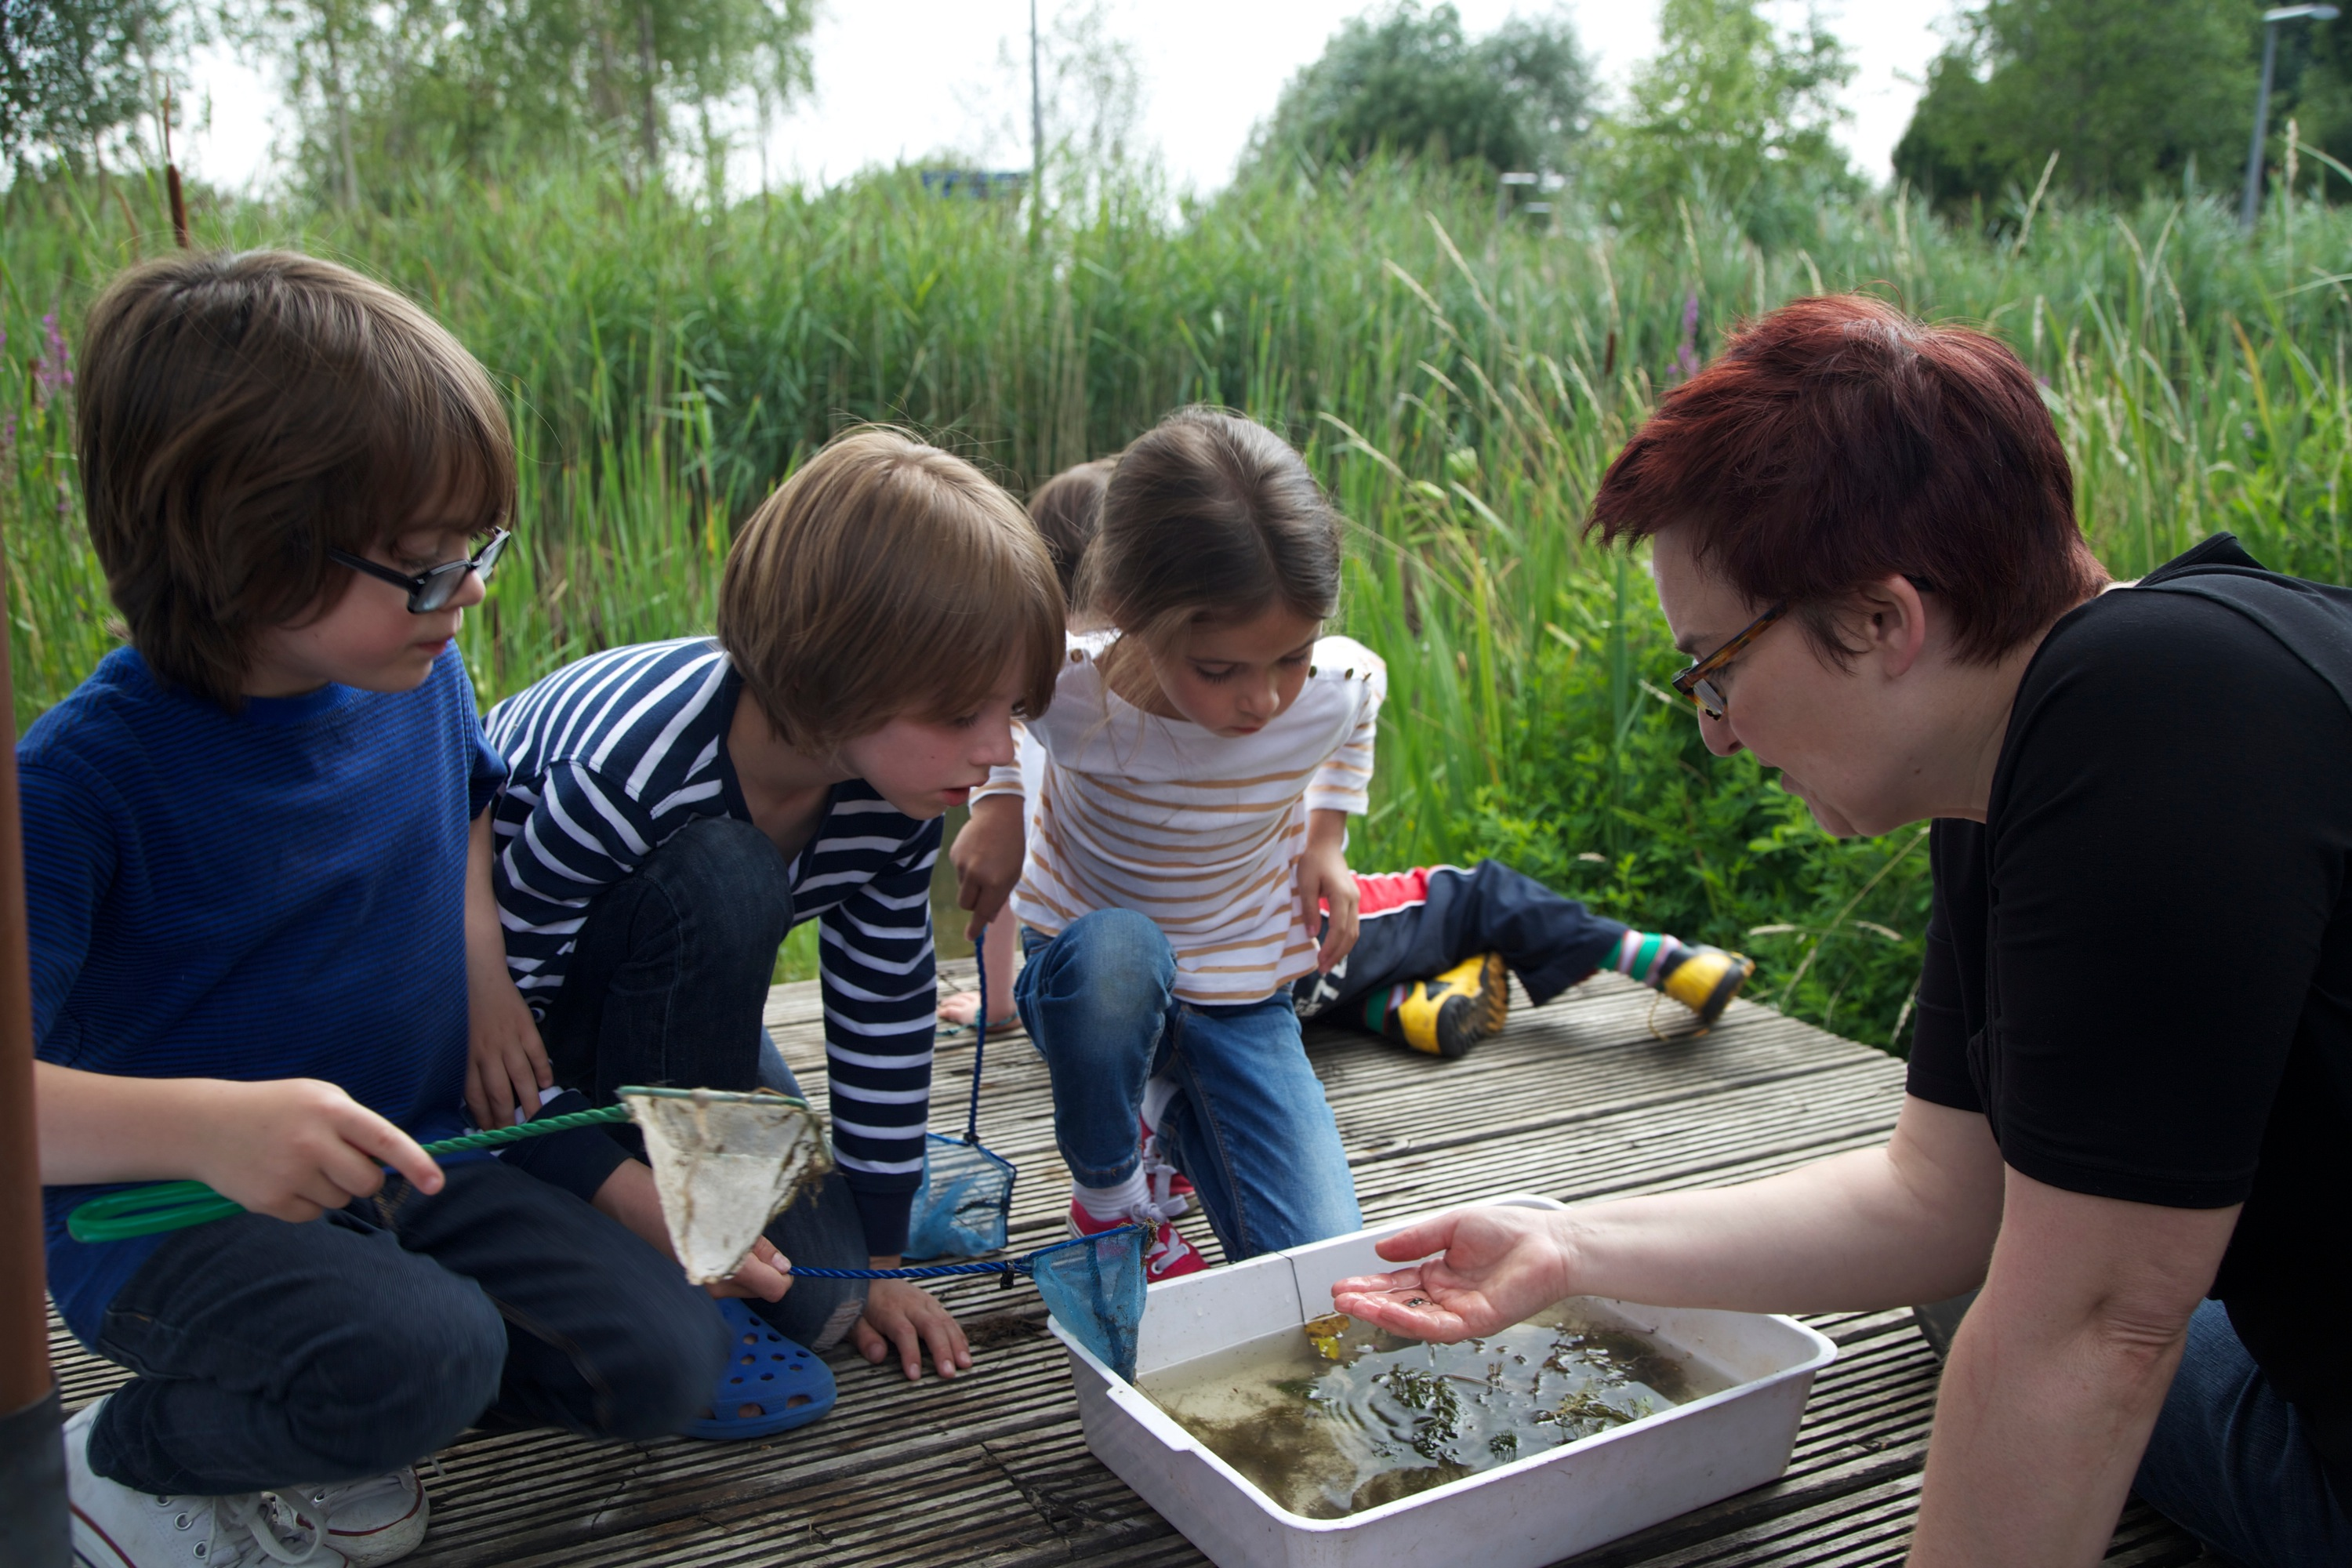 Children examine their catch after Mini-beast hunting at Greenwich Ecology Park.